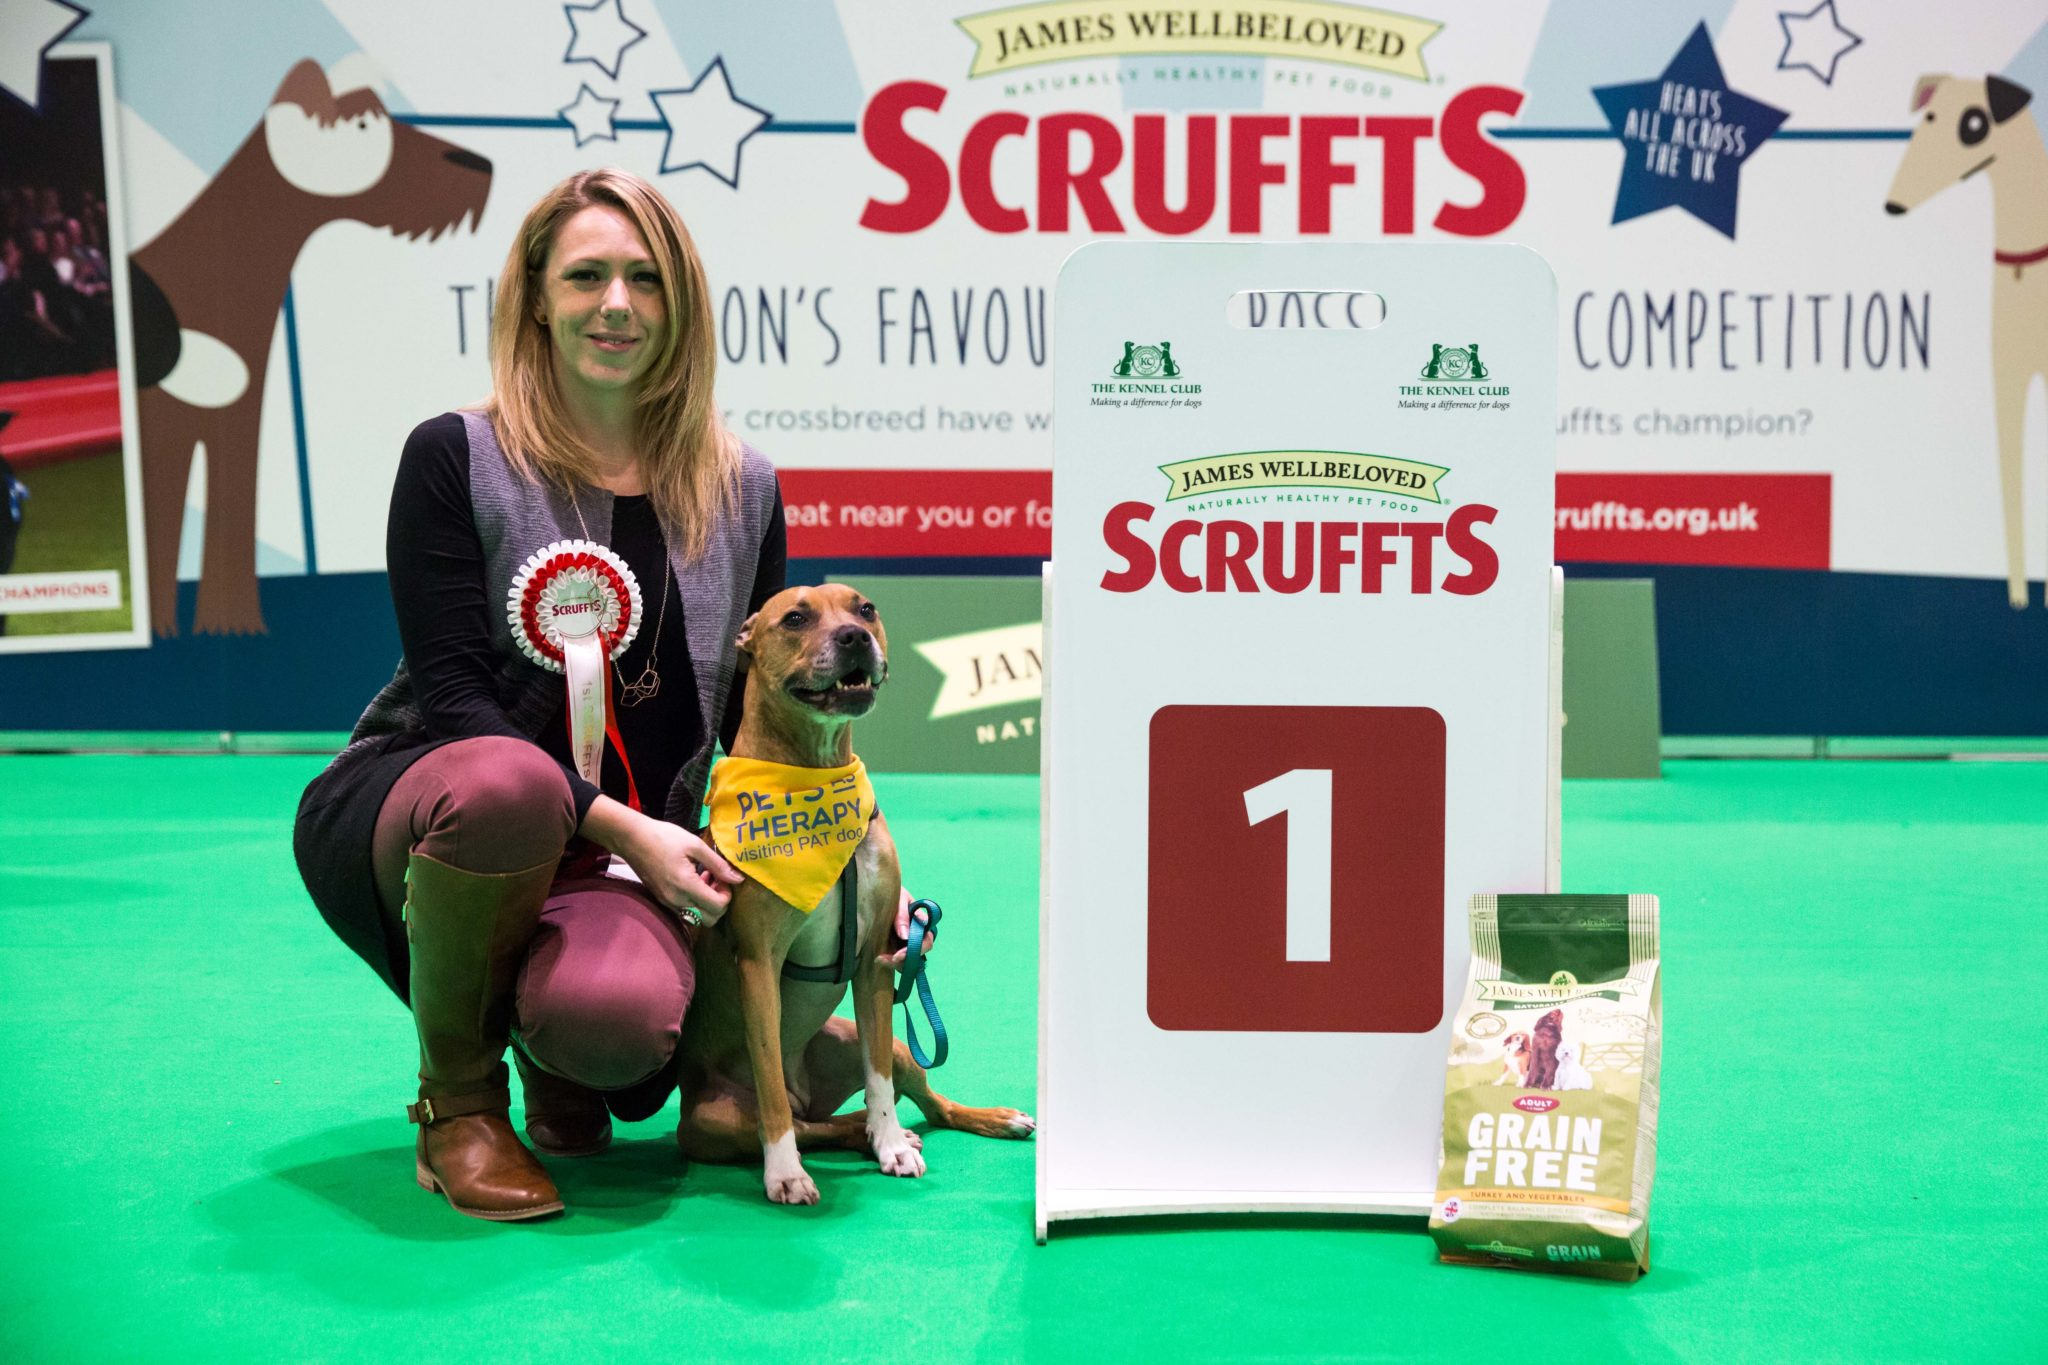 Therapy dog helping homeless people set to appear at Crufts grand final